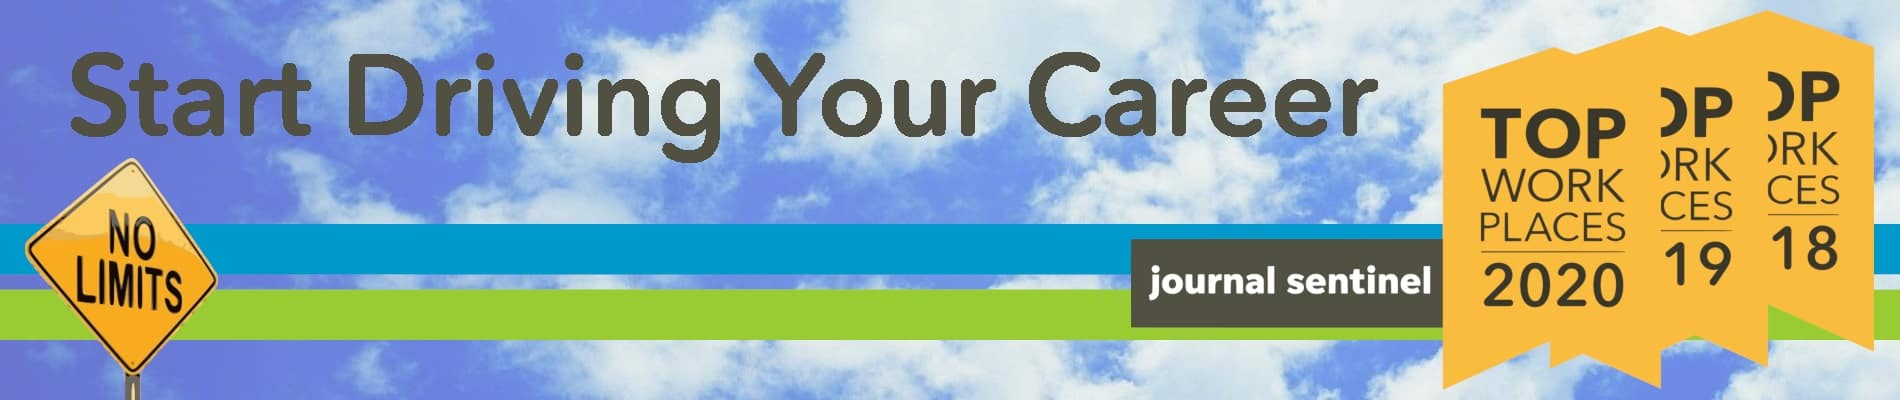 Careers-Banner